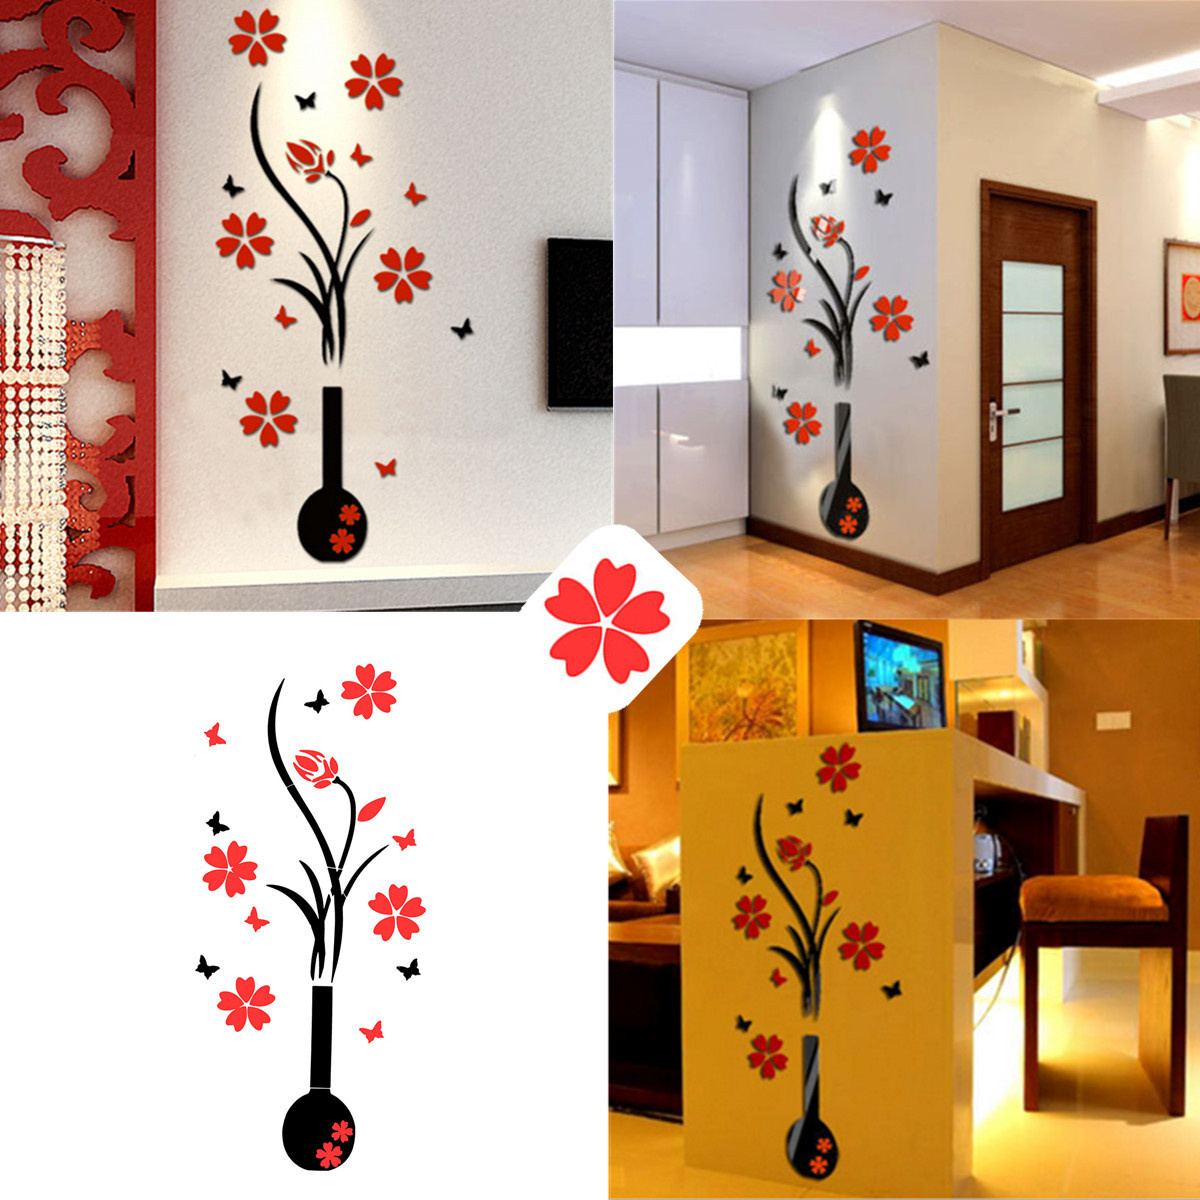 diy 3d fleur vase stickers autocollant murale adh sive pour d co chambre salon petit 46. Black Bedroom Furniture Sets. Home Design Ideas